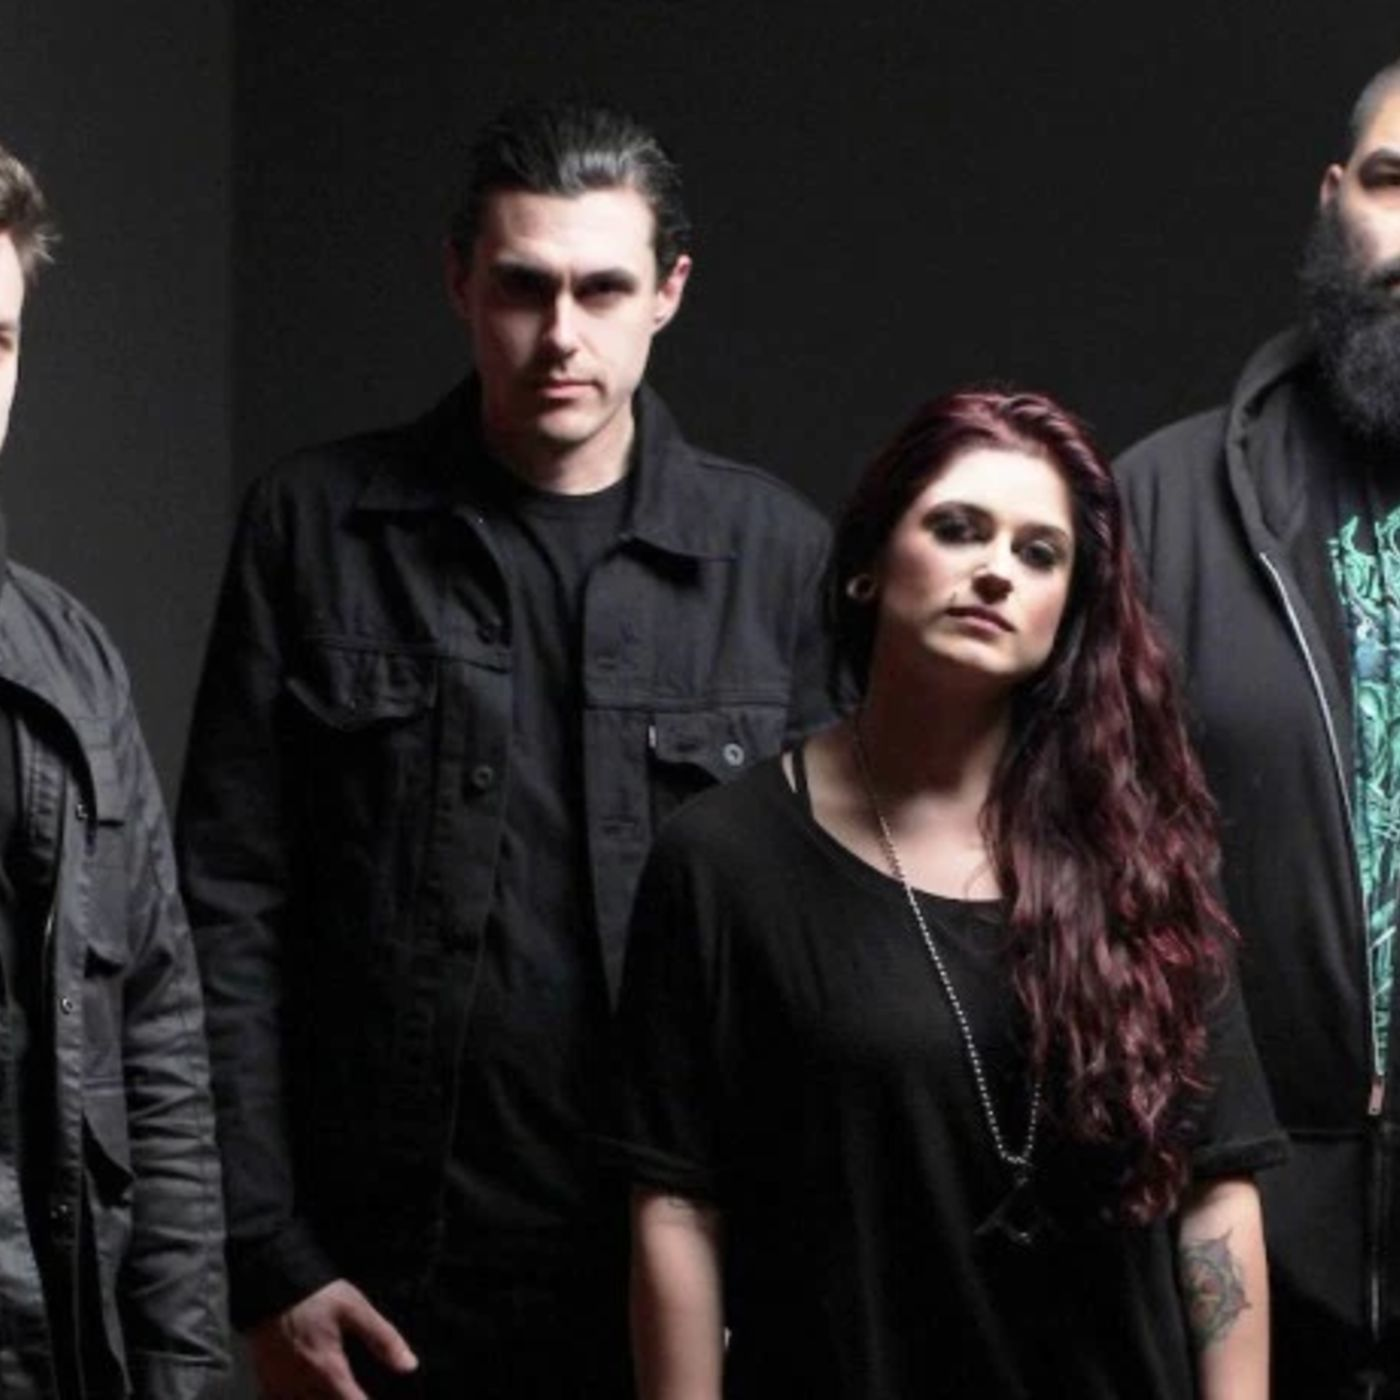 Chaney Crabb of Entheos: The newest female voice in extreme metal